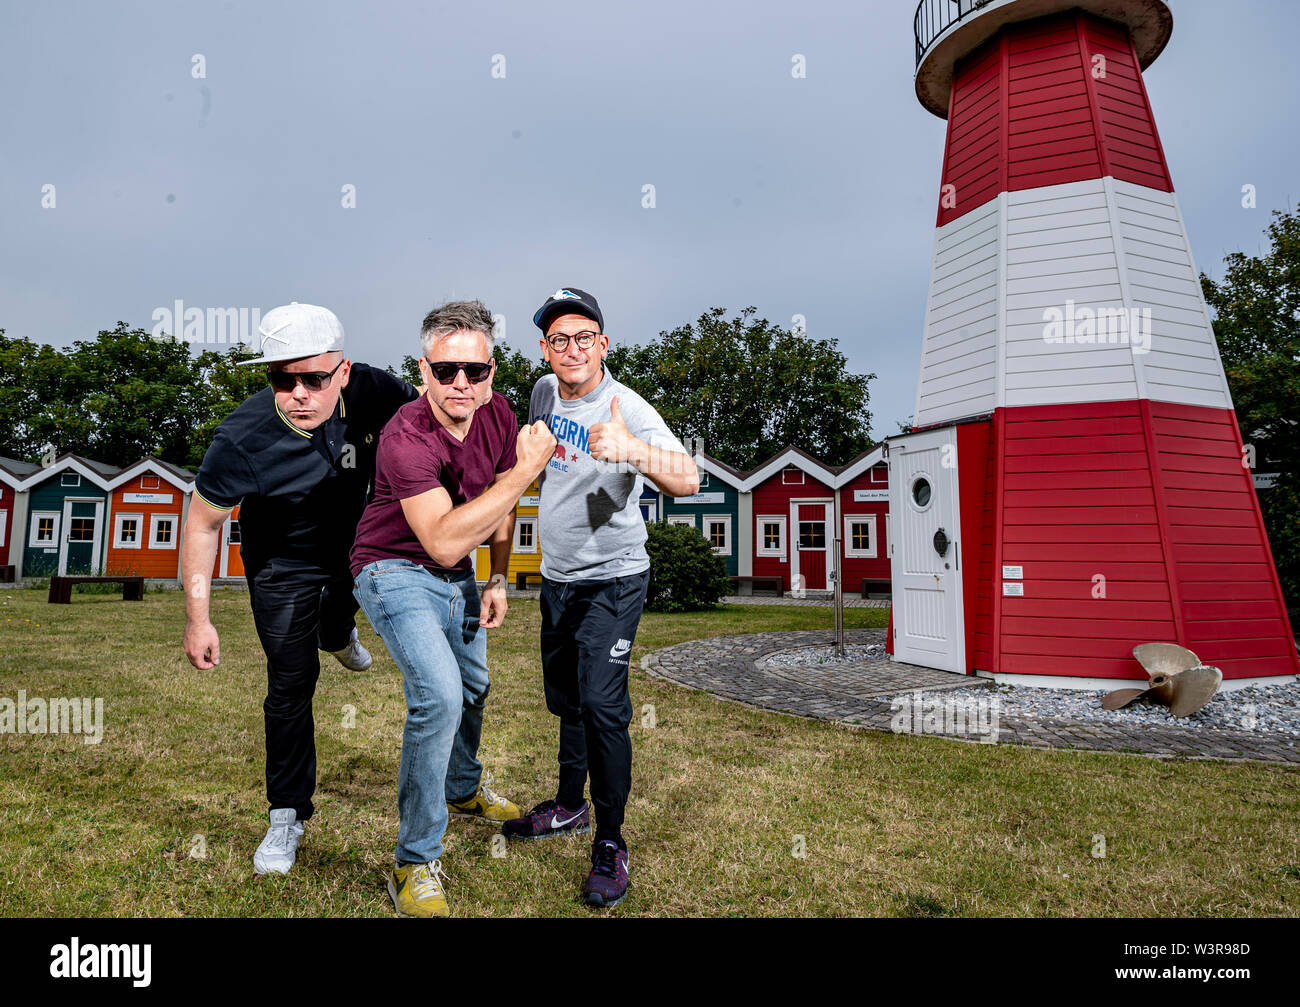 Helgoland, Germany. 17th July, 2019. The hip-hop band Fettes Brot, Boris Lauterbach alias 'König Boris' (l-r), Martin Vandreier alias 'Doktor Renz' and Björn Warns alias 'Björn Beton', are standing next to a Leuxchtturm on the island of Helgoland on the day of their concert. 700 visitors are expected in the sold out Nordseehalle. Credit: Axel Heimken/dpa/Alamy Live News - Stock Image